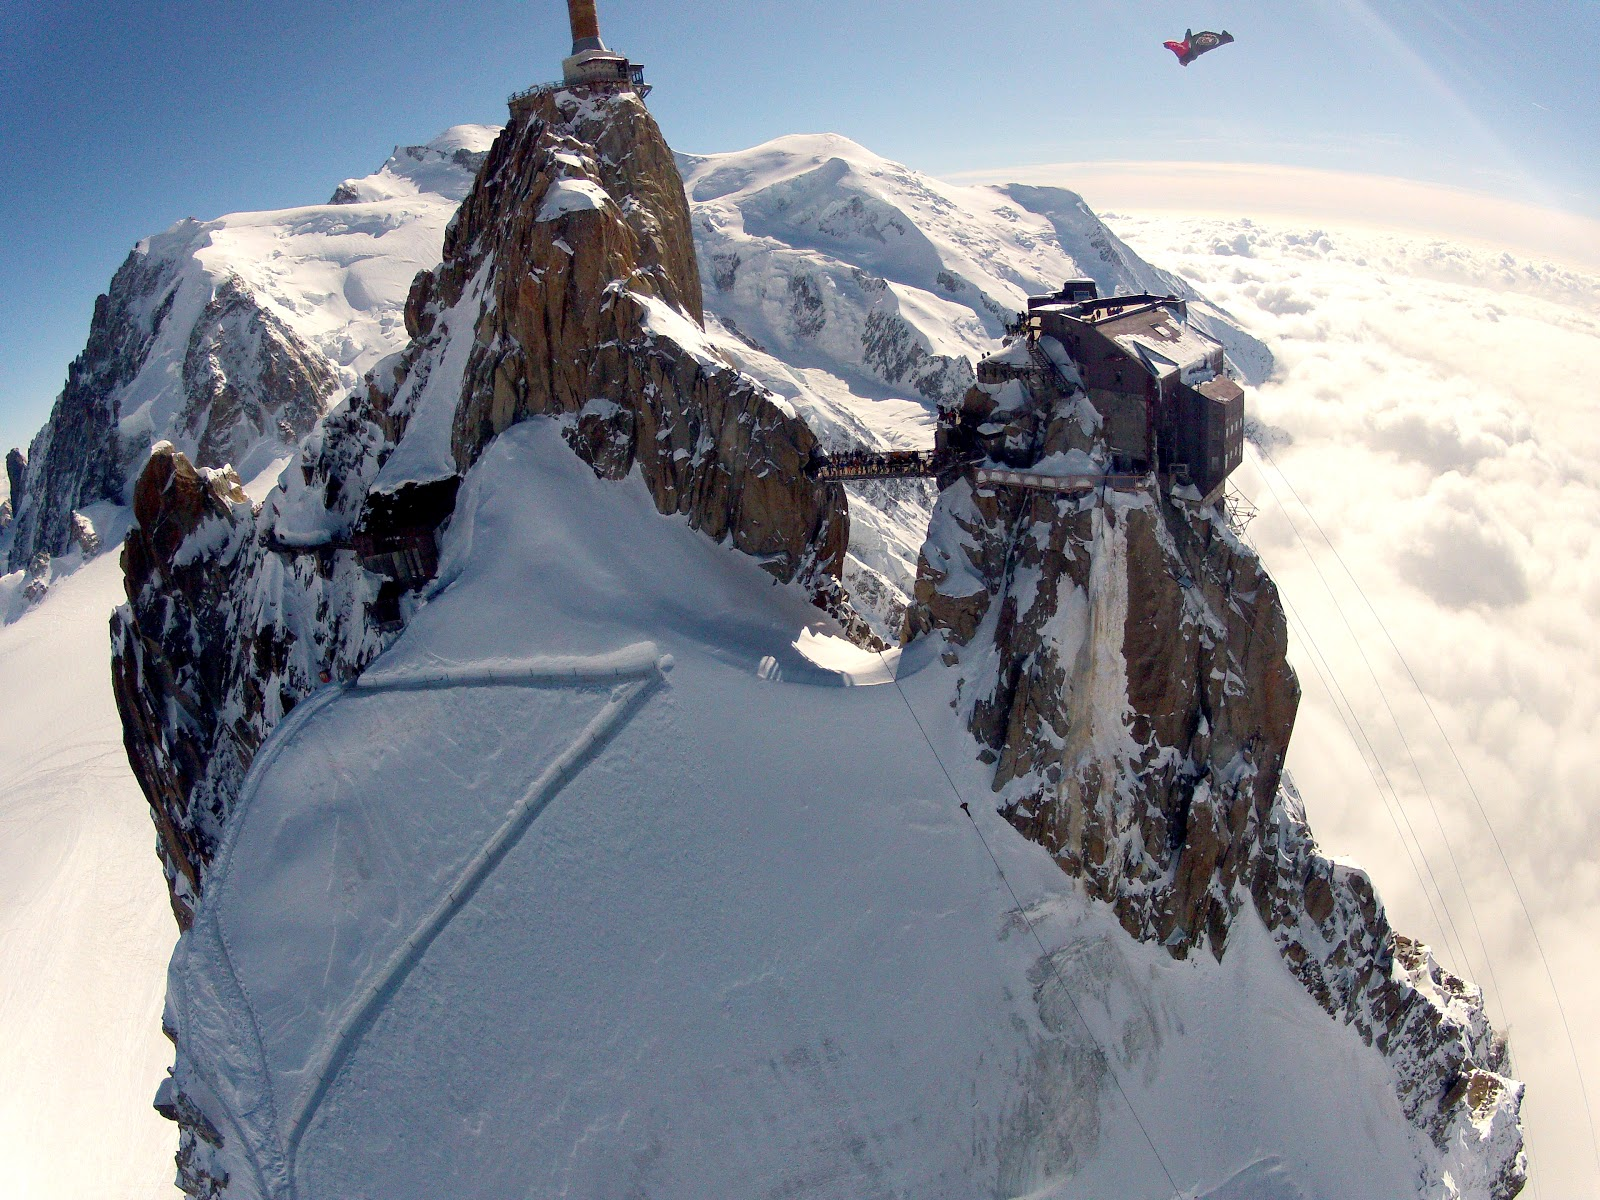 A flight in Chamonix. Threading the needle, the wingsuit fliers flew underneath the bridge at Aiguille du midi. Photo: Wingmen.